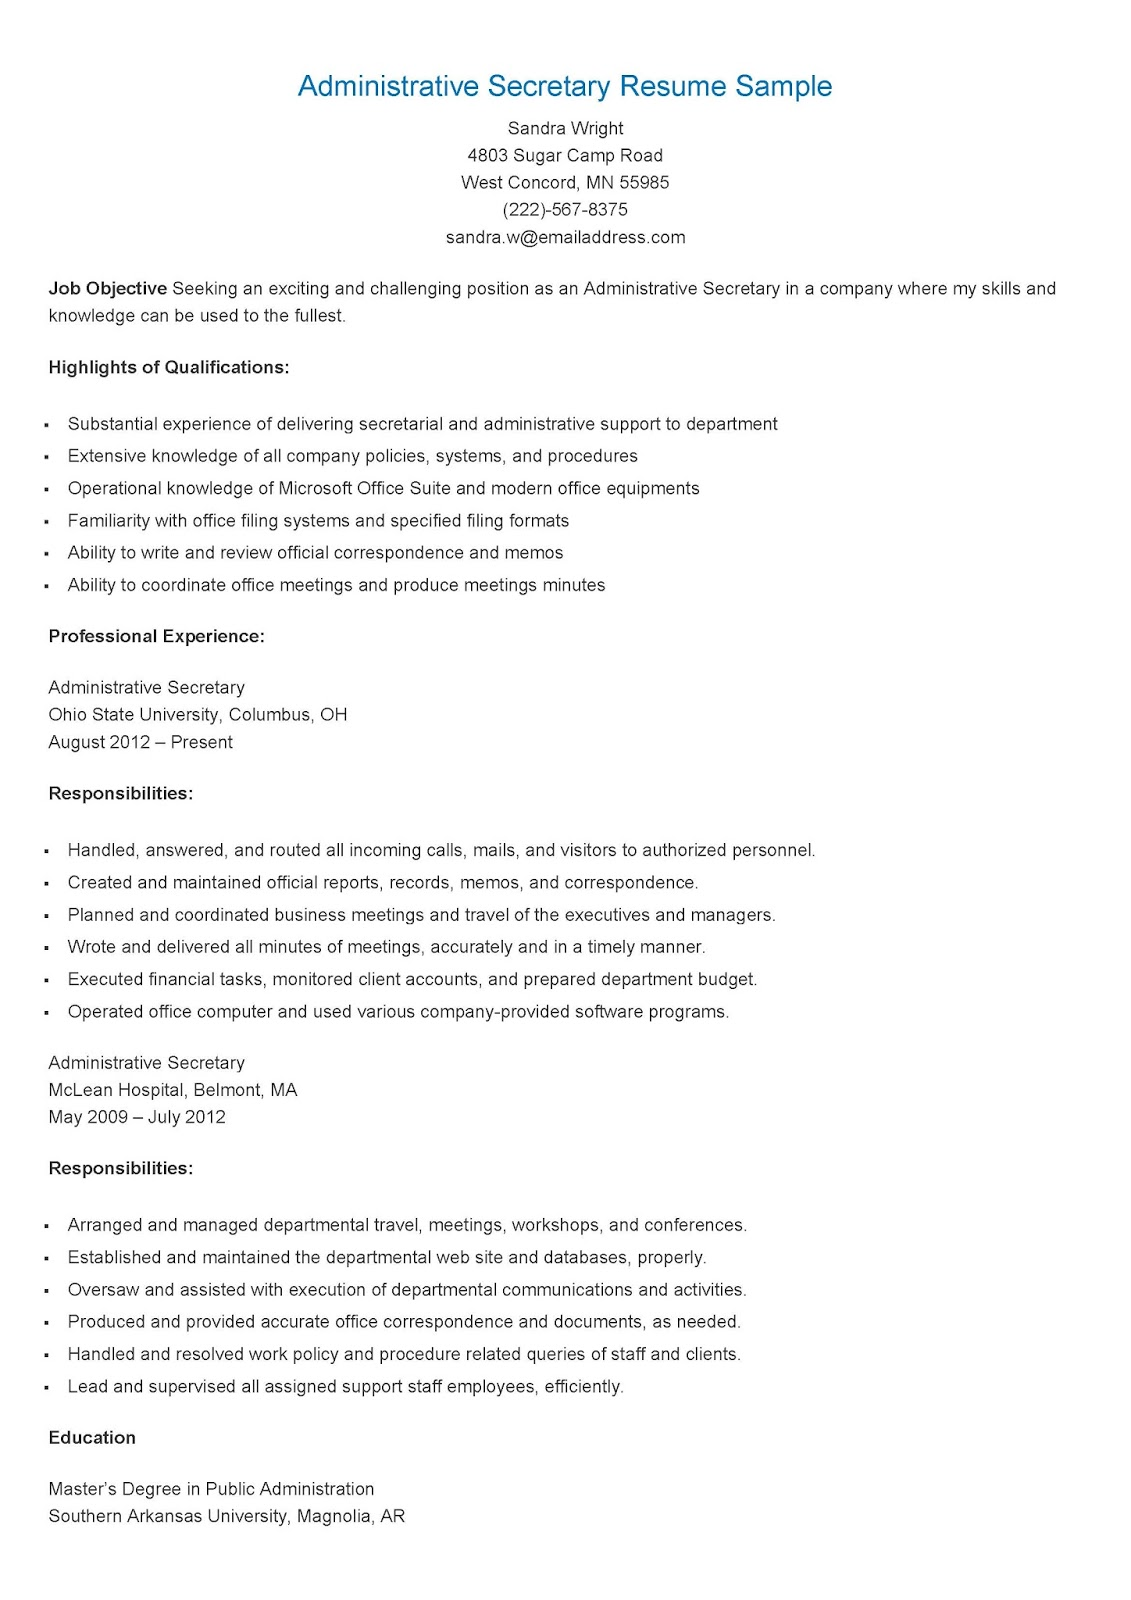 Free Secretary Resume Writing Example Provided By A Professional Resume  Writer. Site Offers Hundreds Of Free Resume Samples To Use As A Guide When  Writing ...